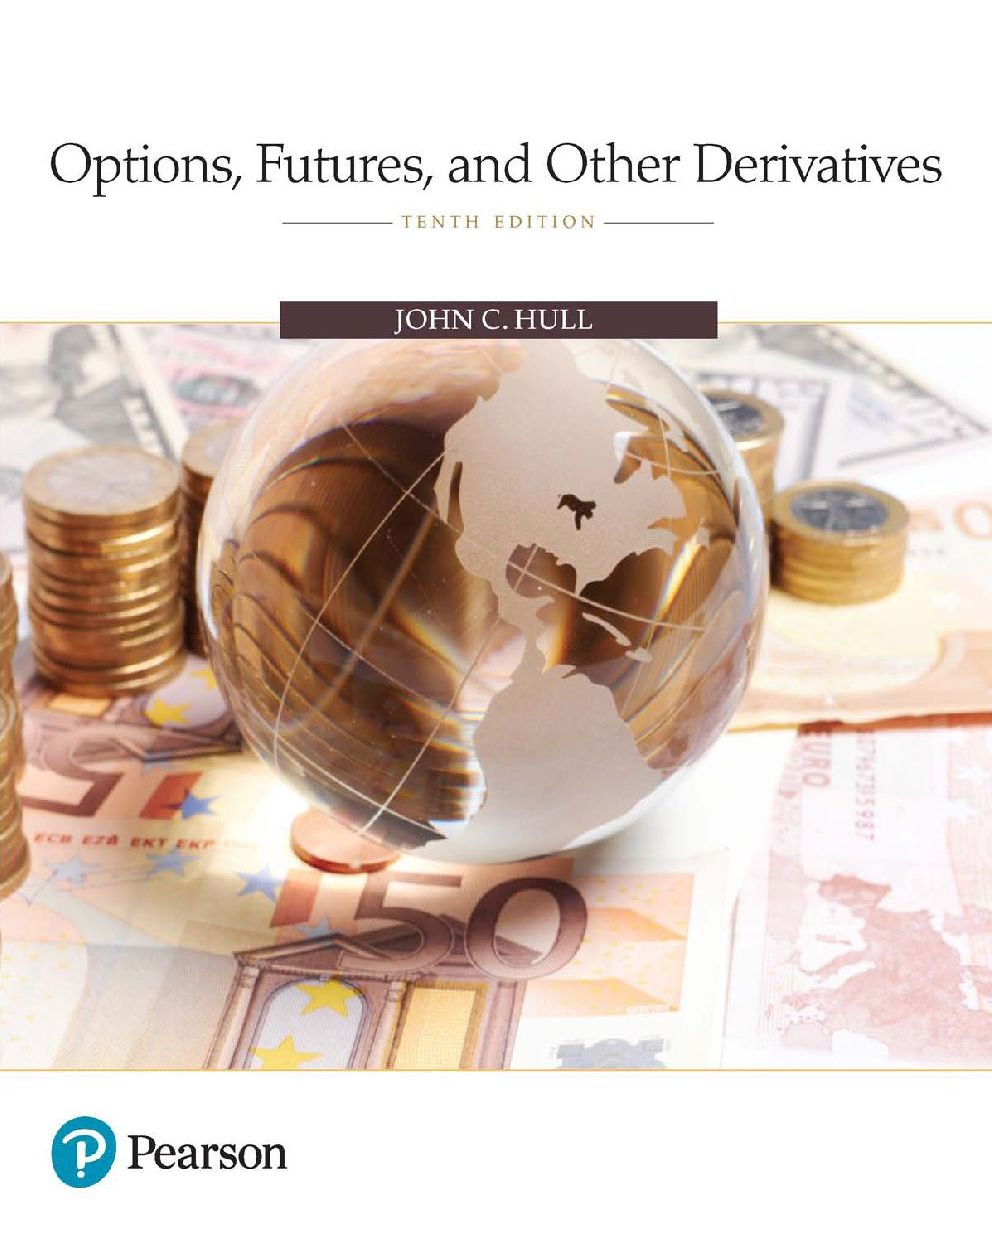 Downloadslide download slides ebooks solution manual and ebook solution manual powerpoint test bank book title options futures and other derivatives edition 10th edition authors john c hull fandeluxe Choice Image